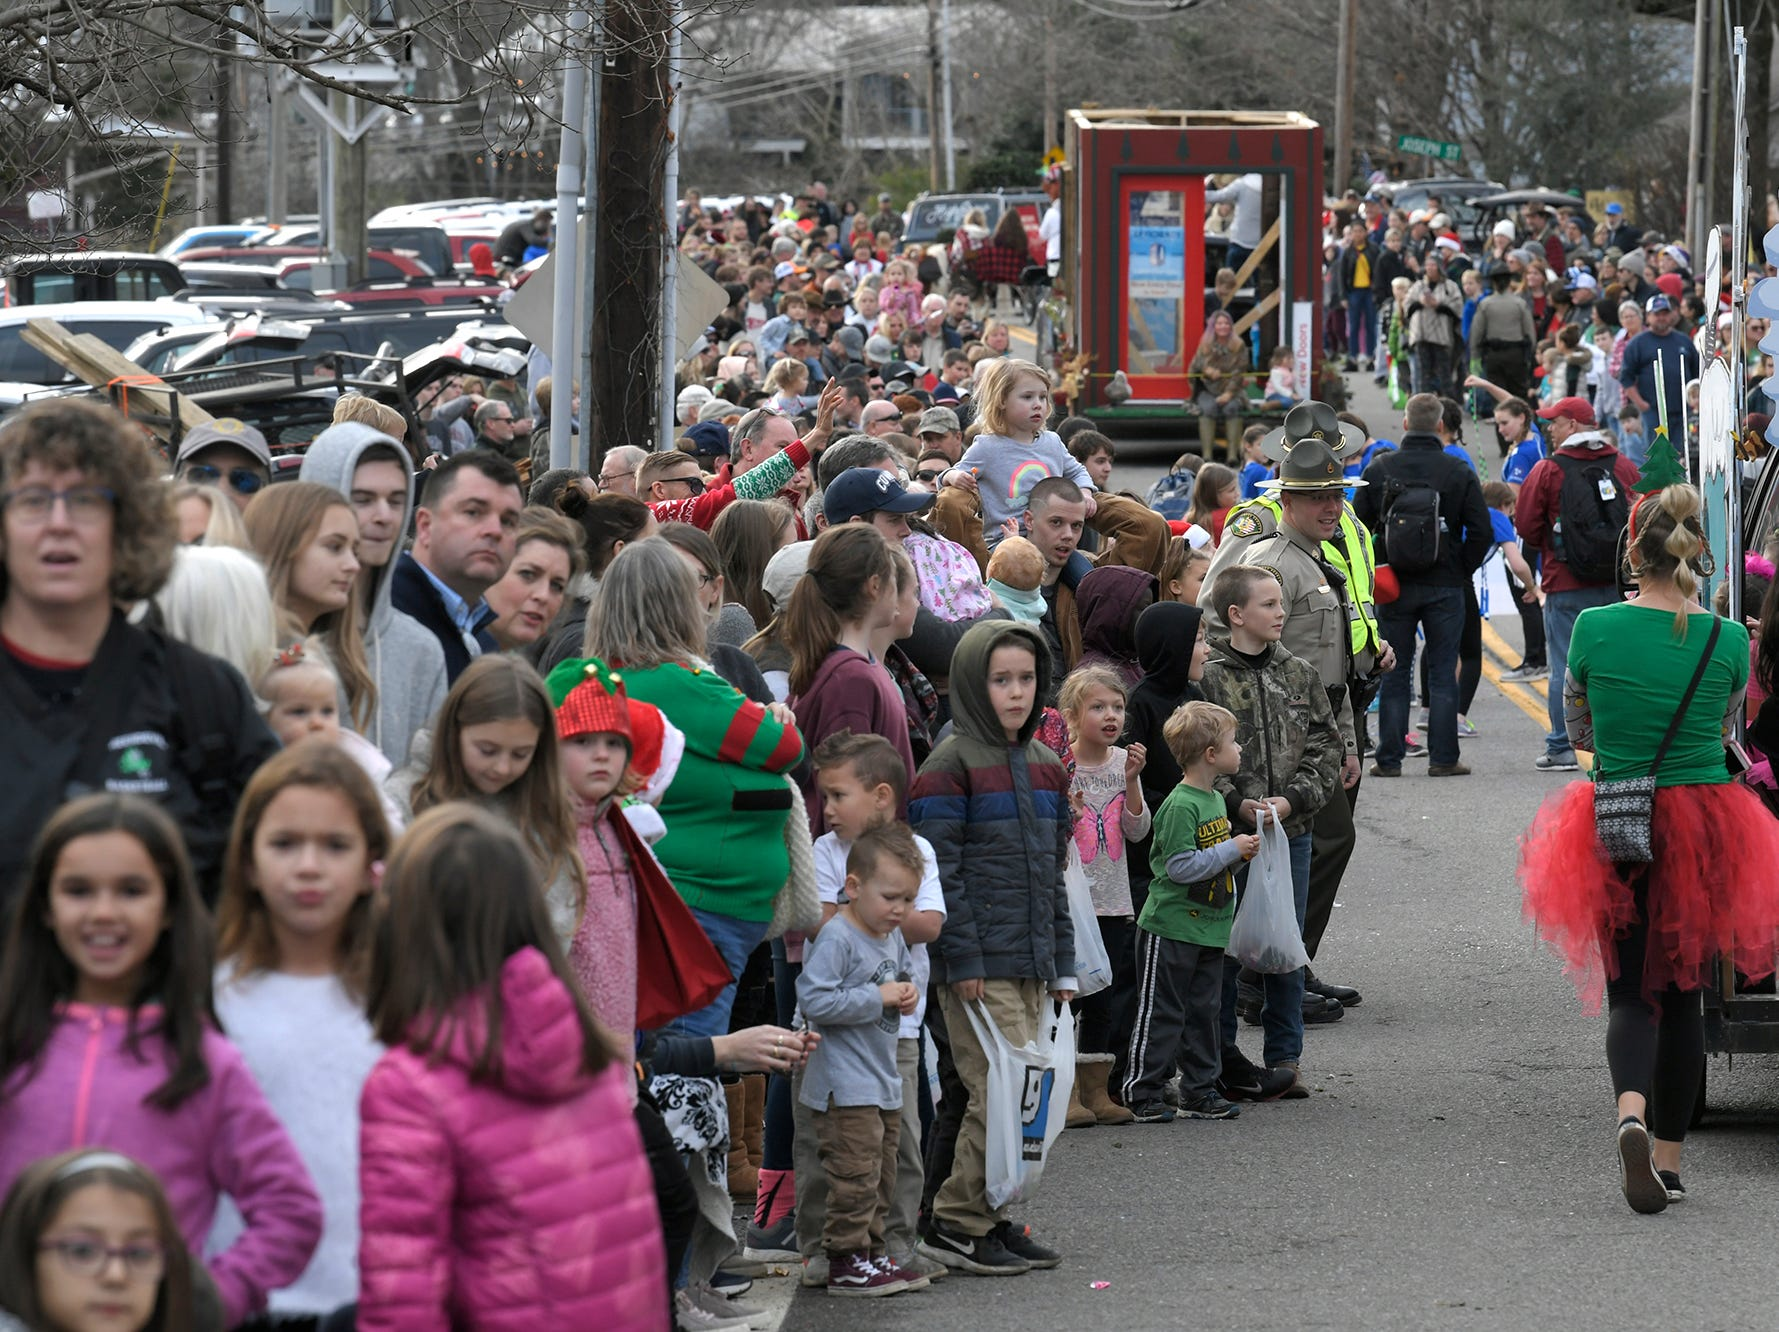 Thousands of people line the street to watch the Leipers Fork Christmas Parade on Saturday, Dec. 15, 2018.